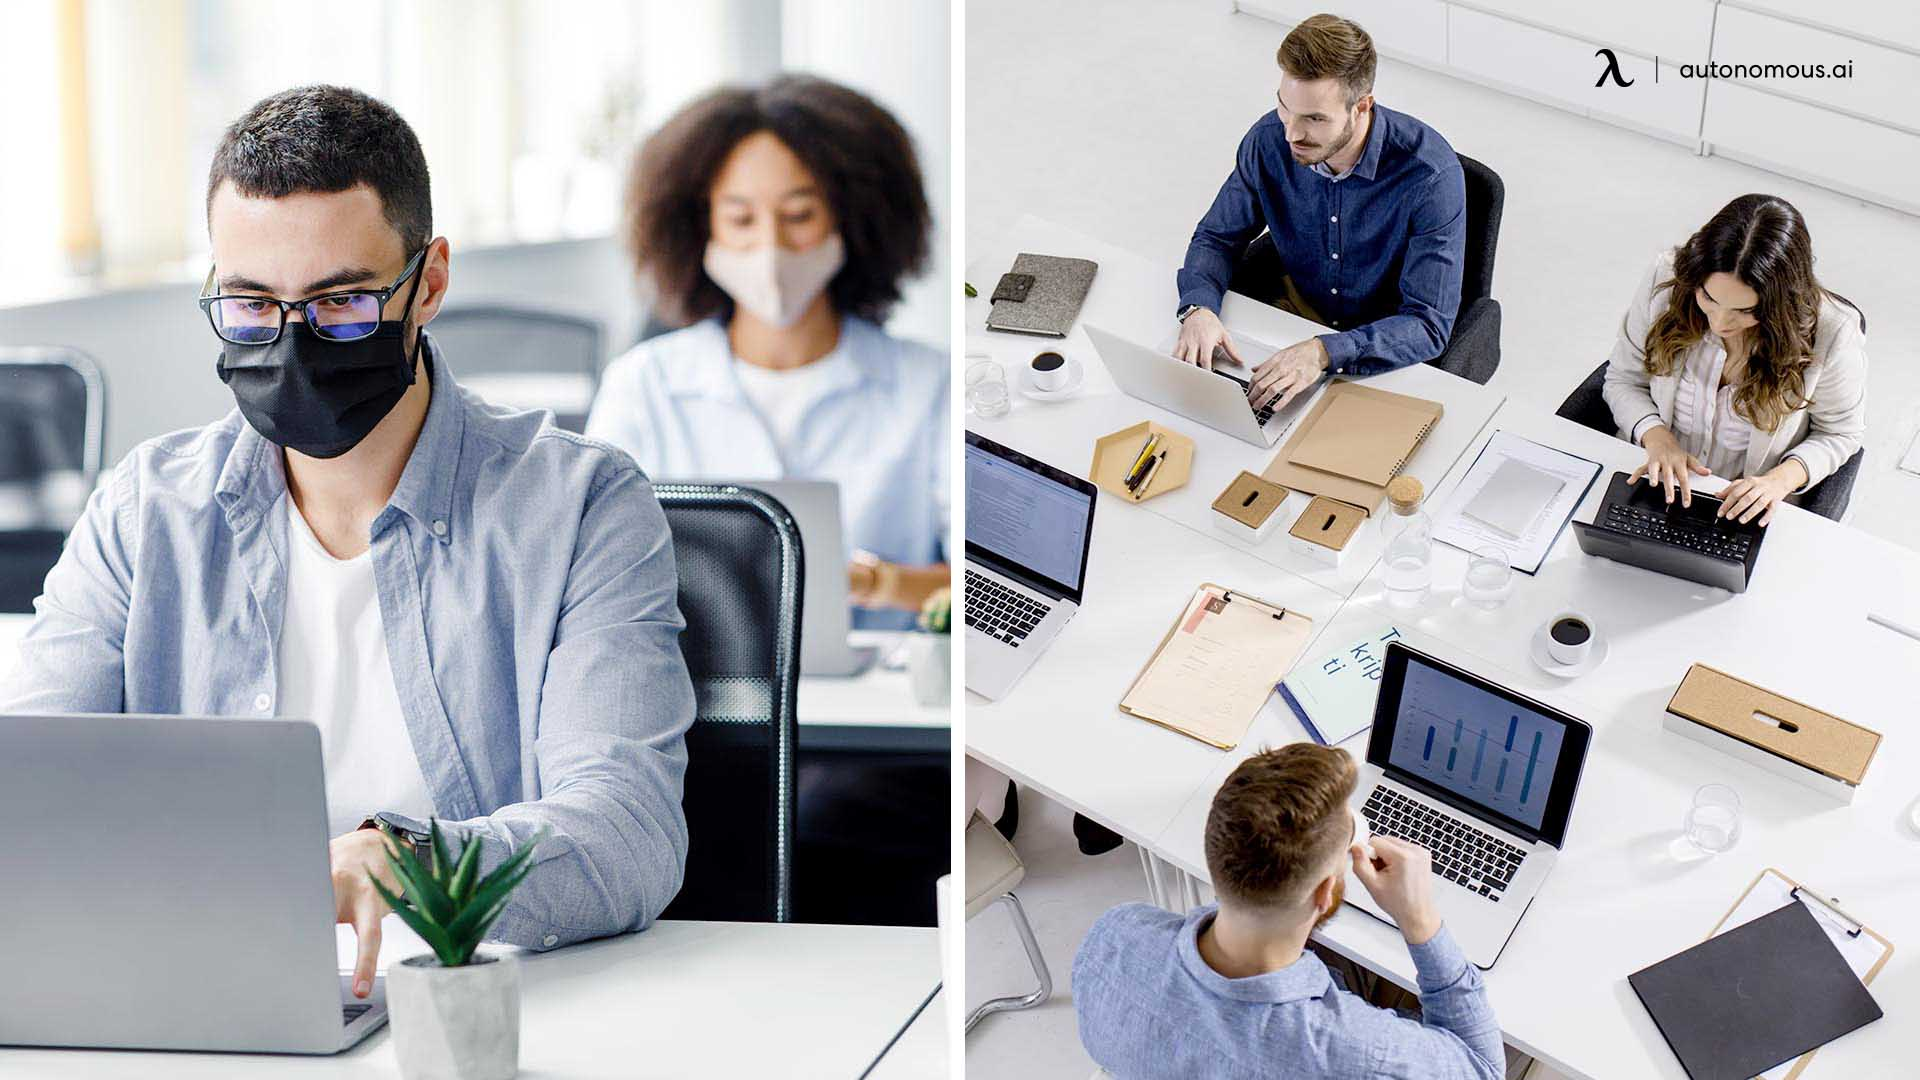 Advantages and Shortcomings of a Hybrid Workplace